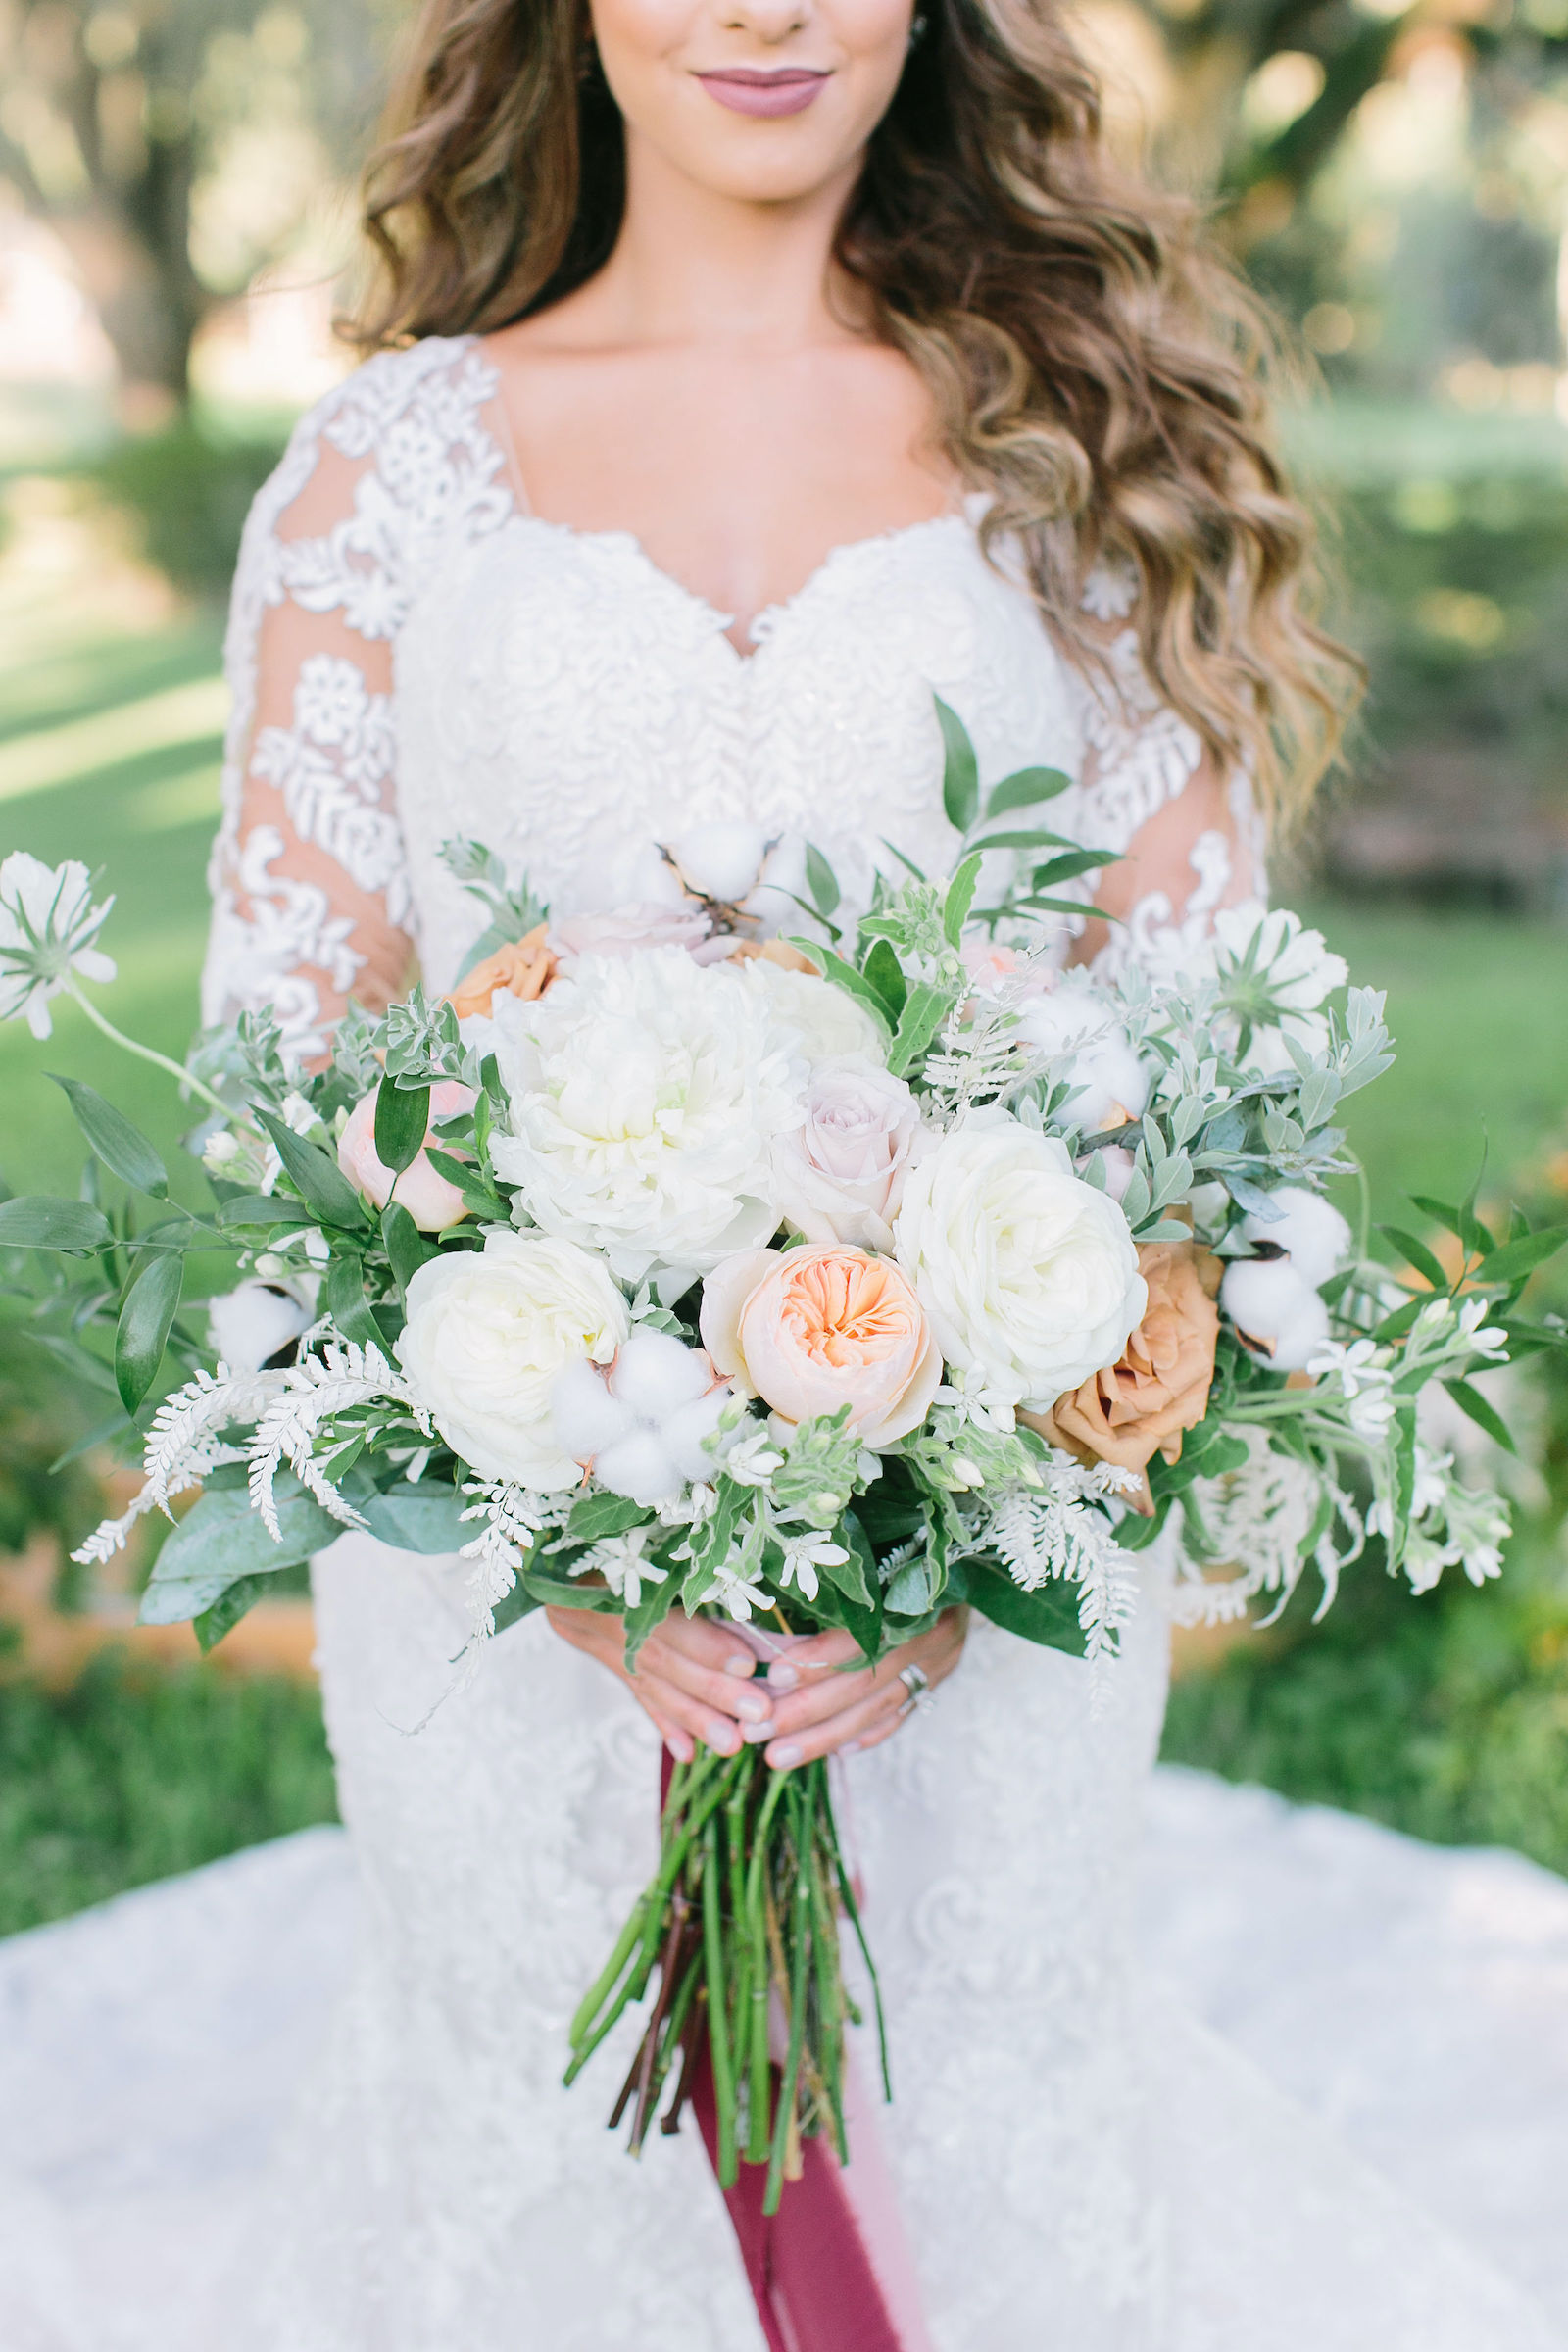 Outdoor Florida Bridal Portrait | Lace Mermaid Long Sleeve Low Back Illusion Lace Bridal Gown Wedding Dress | Ivory Champagne and Peach Natural Bouquet with Roses Peonies Astilbe and Greenery tied with Blush Pink and Mauve Ribbons